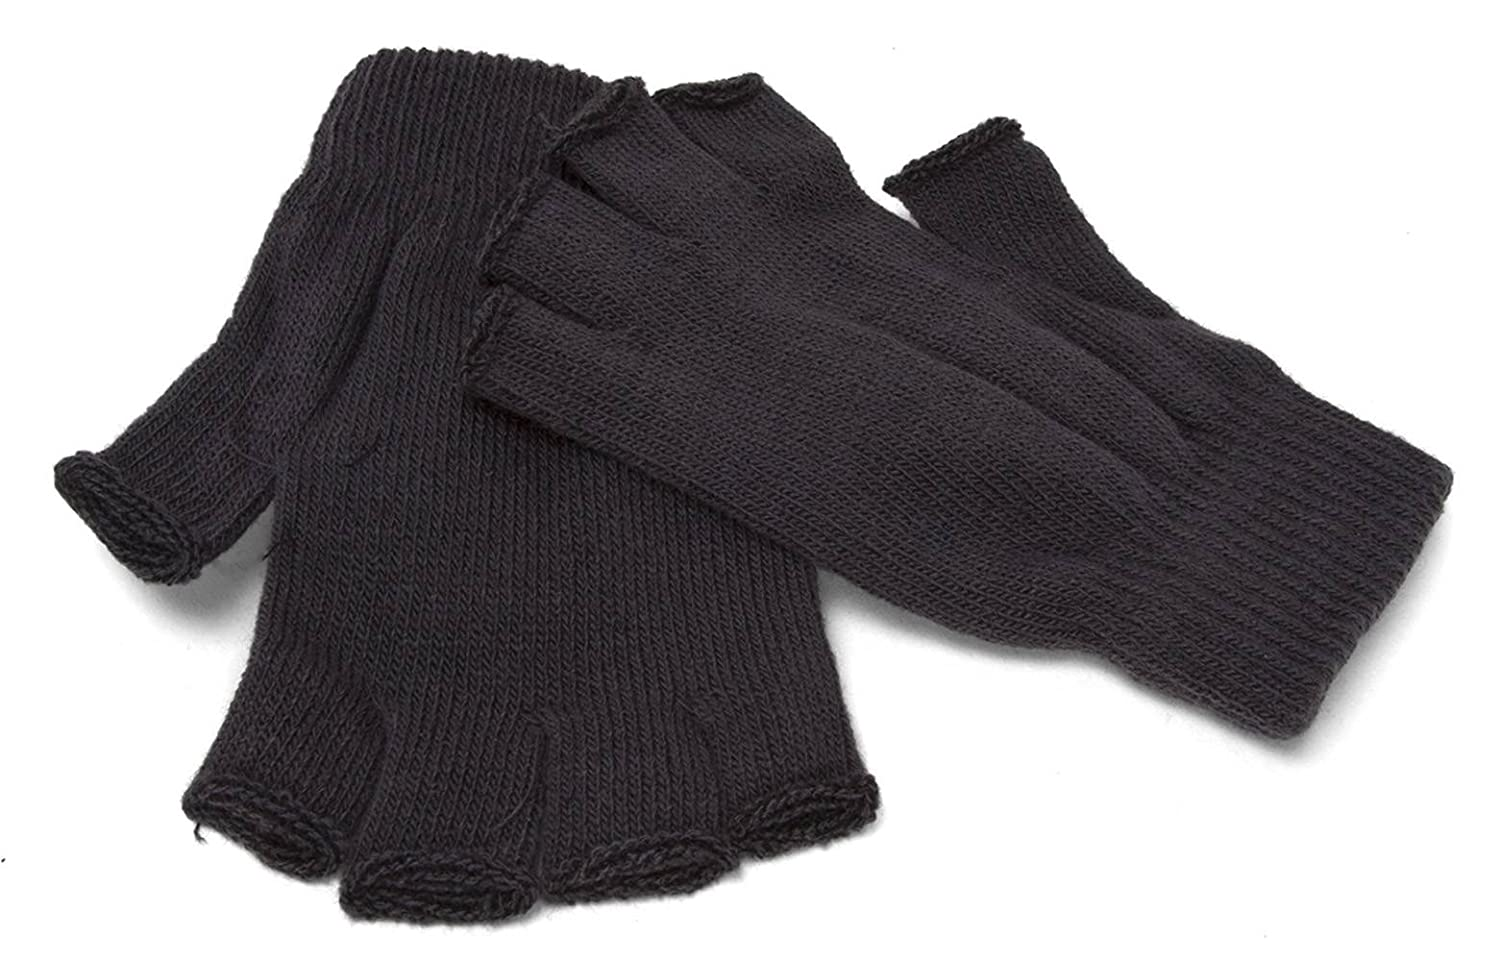 Multi Purpose Fingerless Acrylic Gloves Charcoal